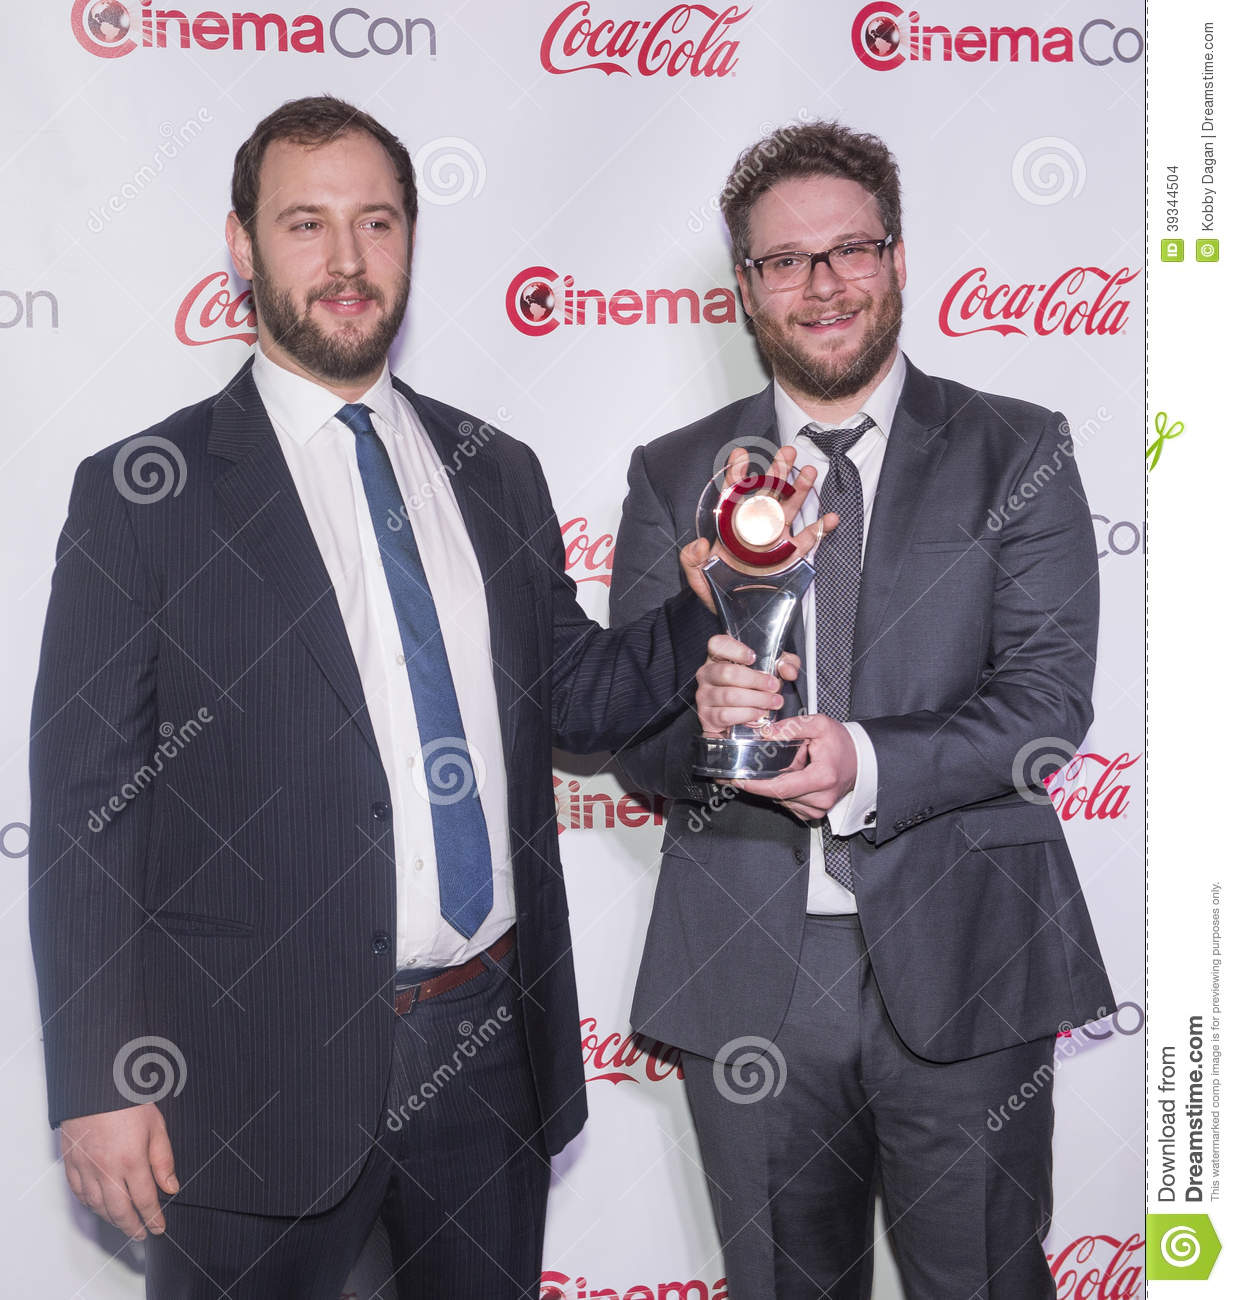 CinemaCon 2014 - die Großleinwand-Achievement Awards